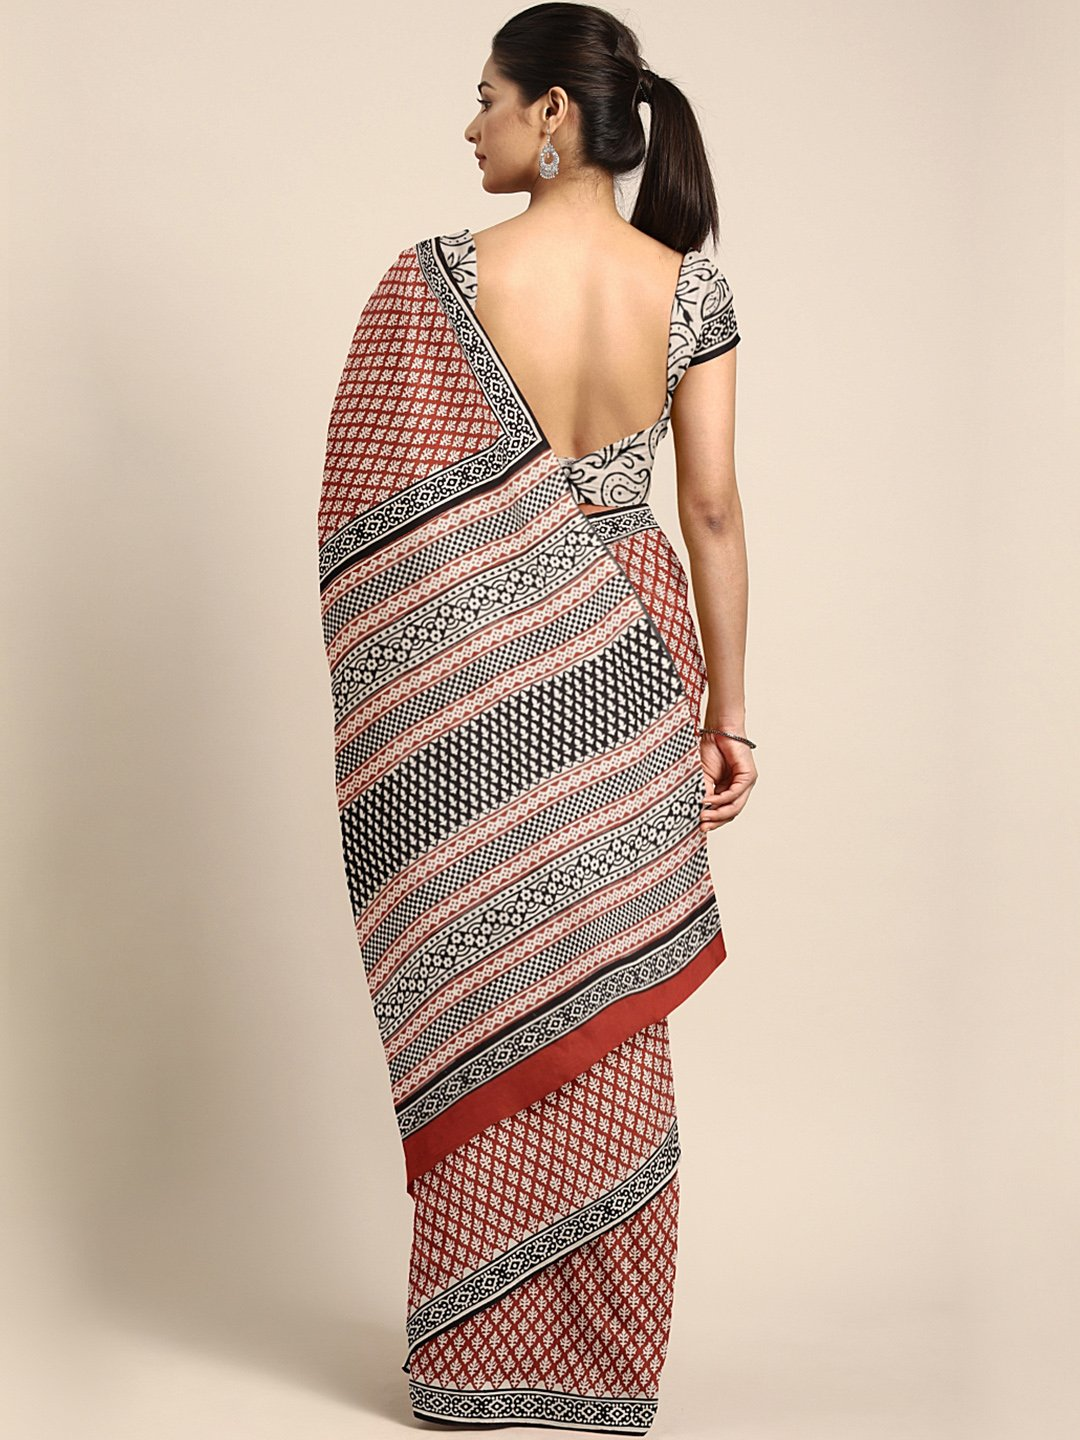 Rust Red & Beige Mud Resist Handblock Print Handcrafted Cotton Saree-Saree-Kalakari India-BHKPSA0051-Cotton, Dabu, Geographical Indication, Hand Blocks, Hand Crafted, Heritage Prints, Indigo, Natural Dyes, Sarees, Sustainable Fabrics-[Linen,Ethnic,wear,Fashionista,Handloom,Handicraft,Indigo,blockprint,block,print,Cotton,Chanderi,Blue, latest,classy,party,bollywood,trendy,summer,style,traditional,formal,elegant,unique,style,hand,block,print, dabu,booti,gift,present,glamorous,affordable,collectibl